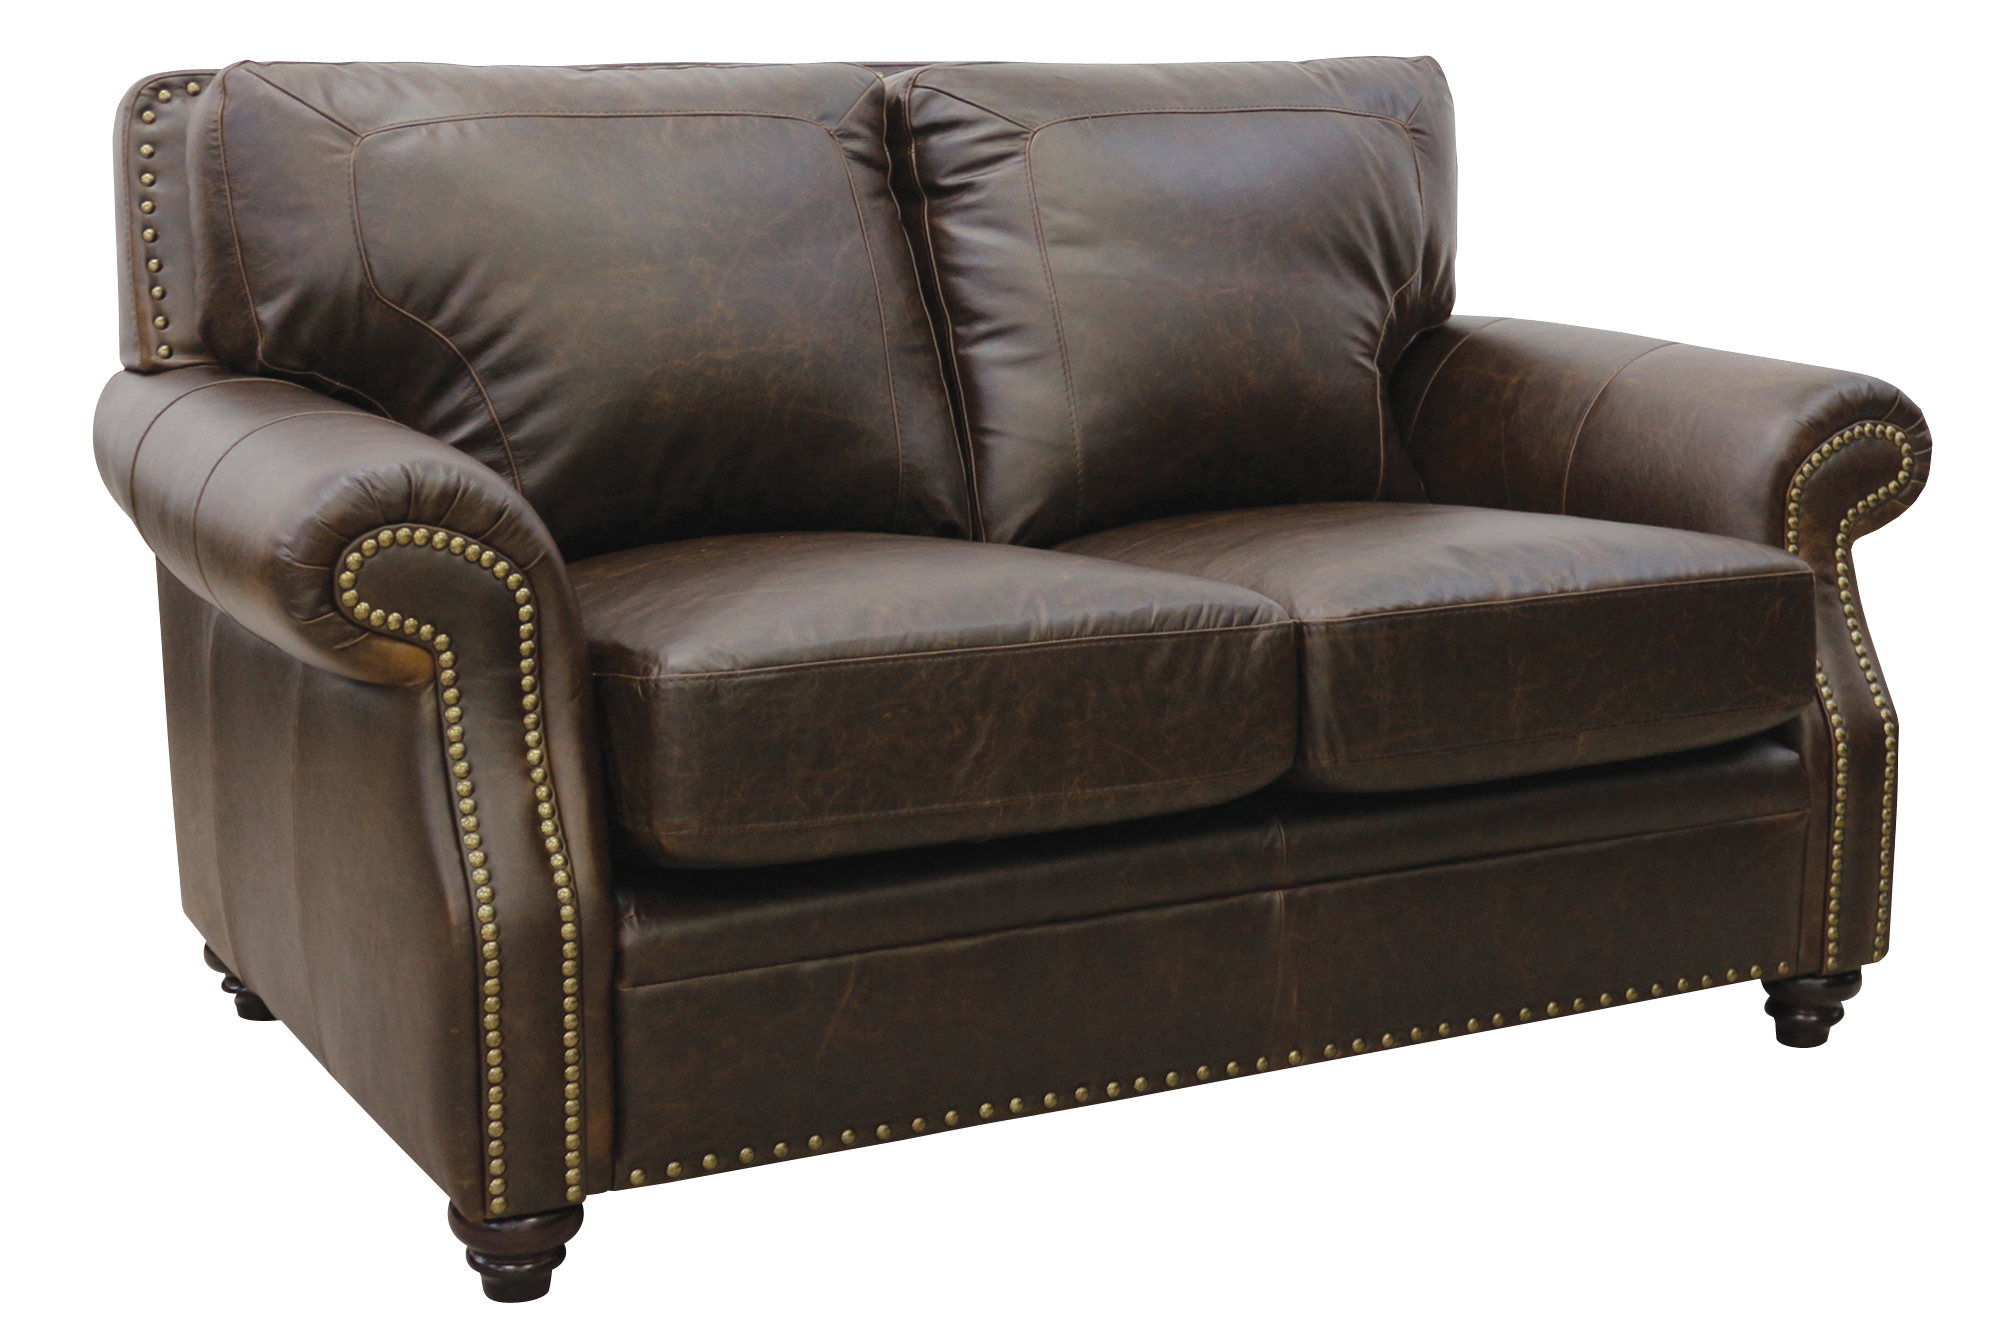 Leather Loveseat New Luke Leather Furniture Italian Made Quotmason Quot Chocolate